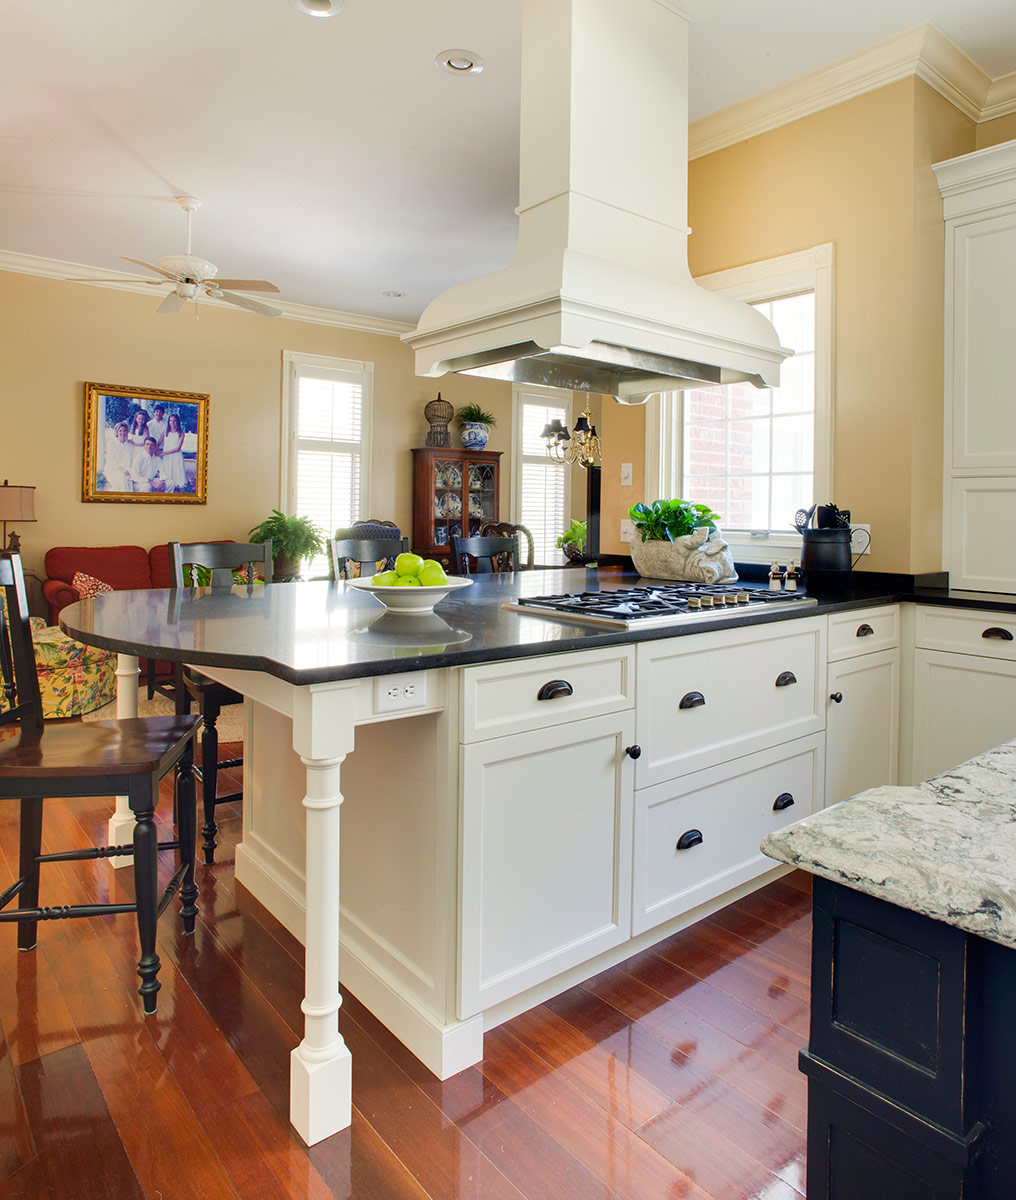 Rustic Elegant Kitchen: Traditional Kitchen Cabinetry With Rustic Elegance